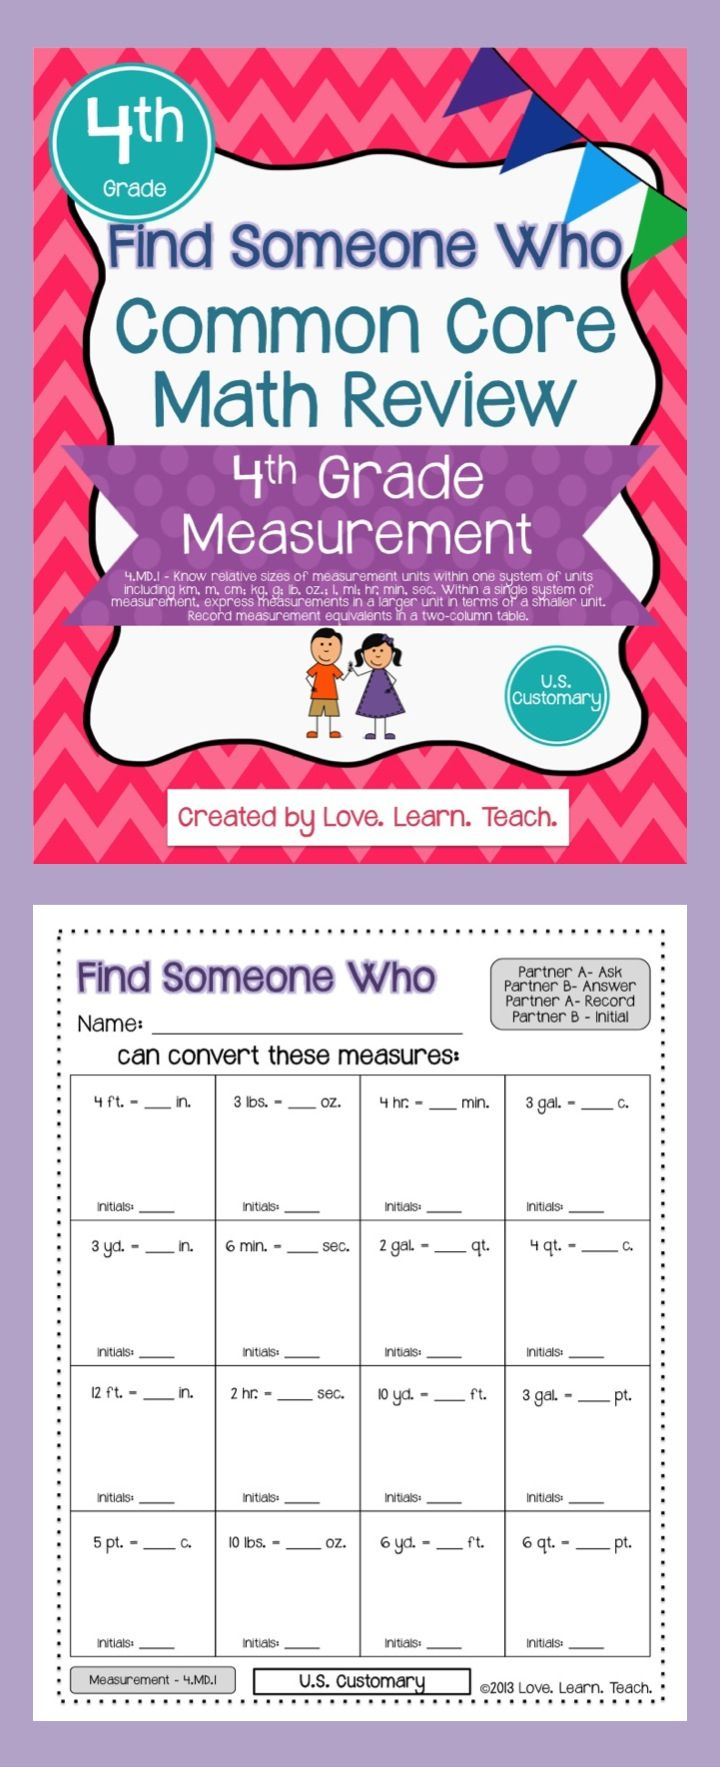 Converting Customary Units of Measurement | Find a Friend ...